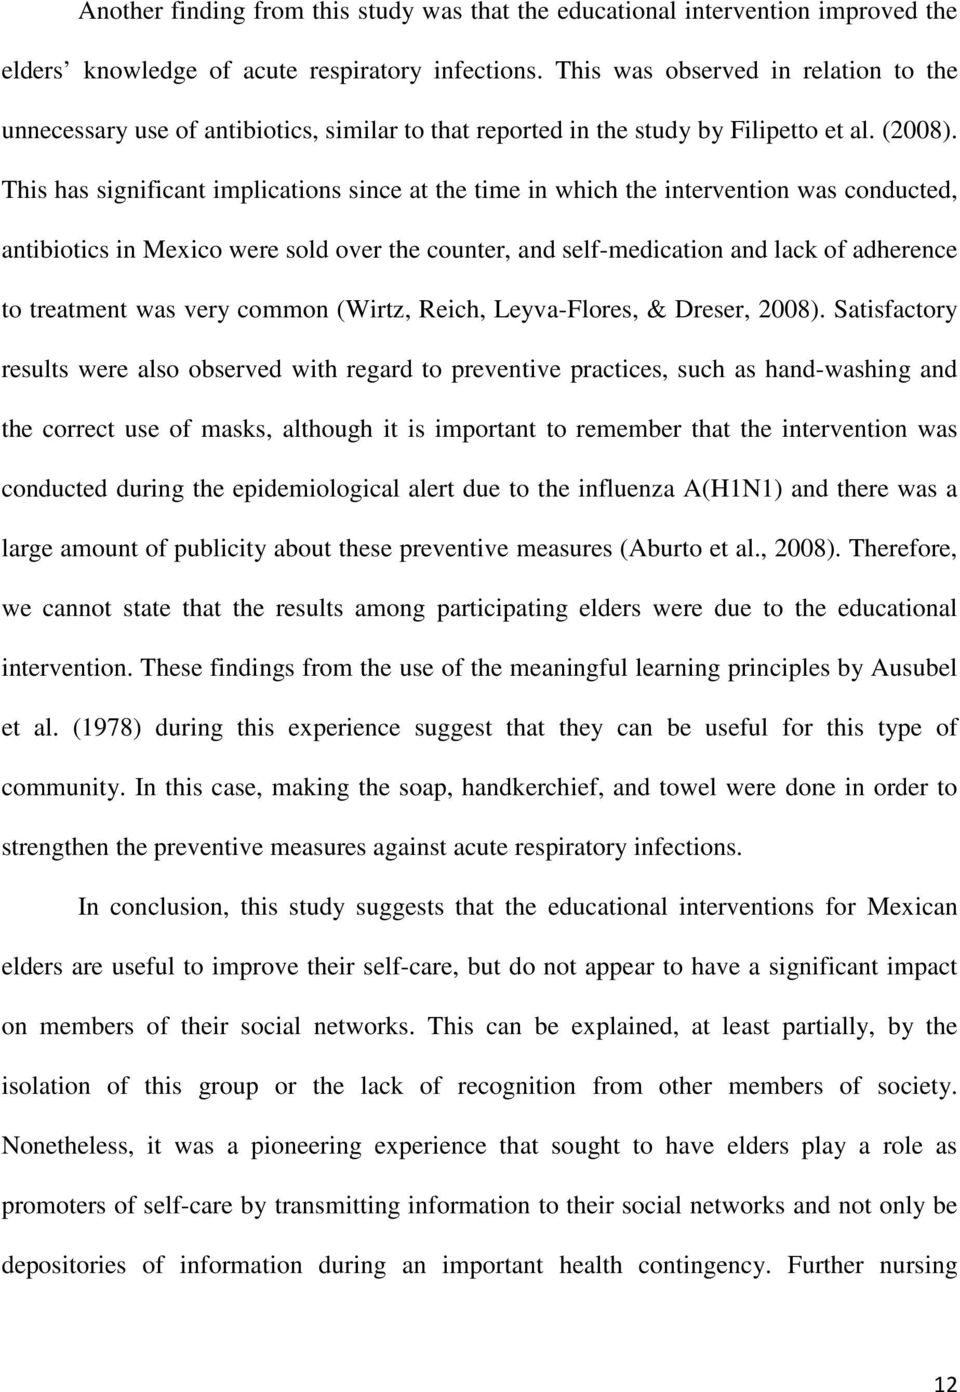 This has significant implications since at the time in which the intervention was conducted, antibiotics in Mexico were sold over the counter, and self-medication and lack of adherence to treatment